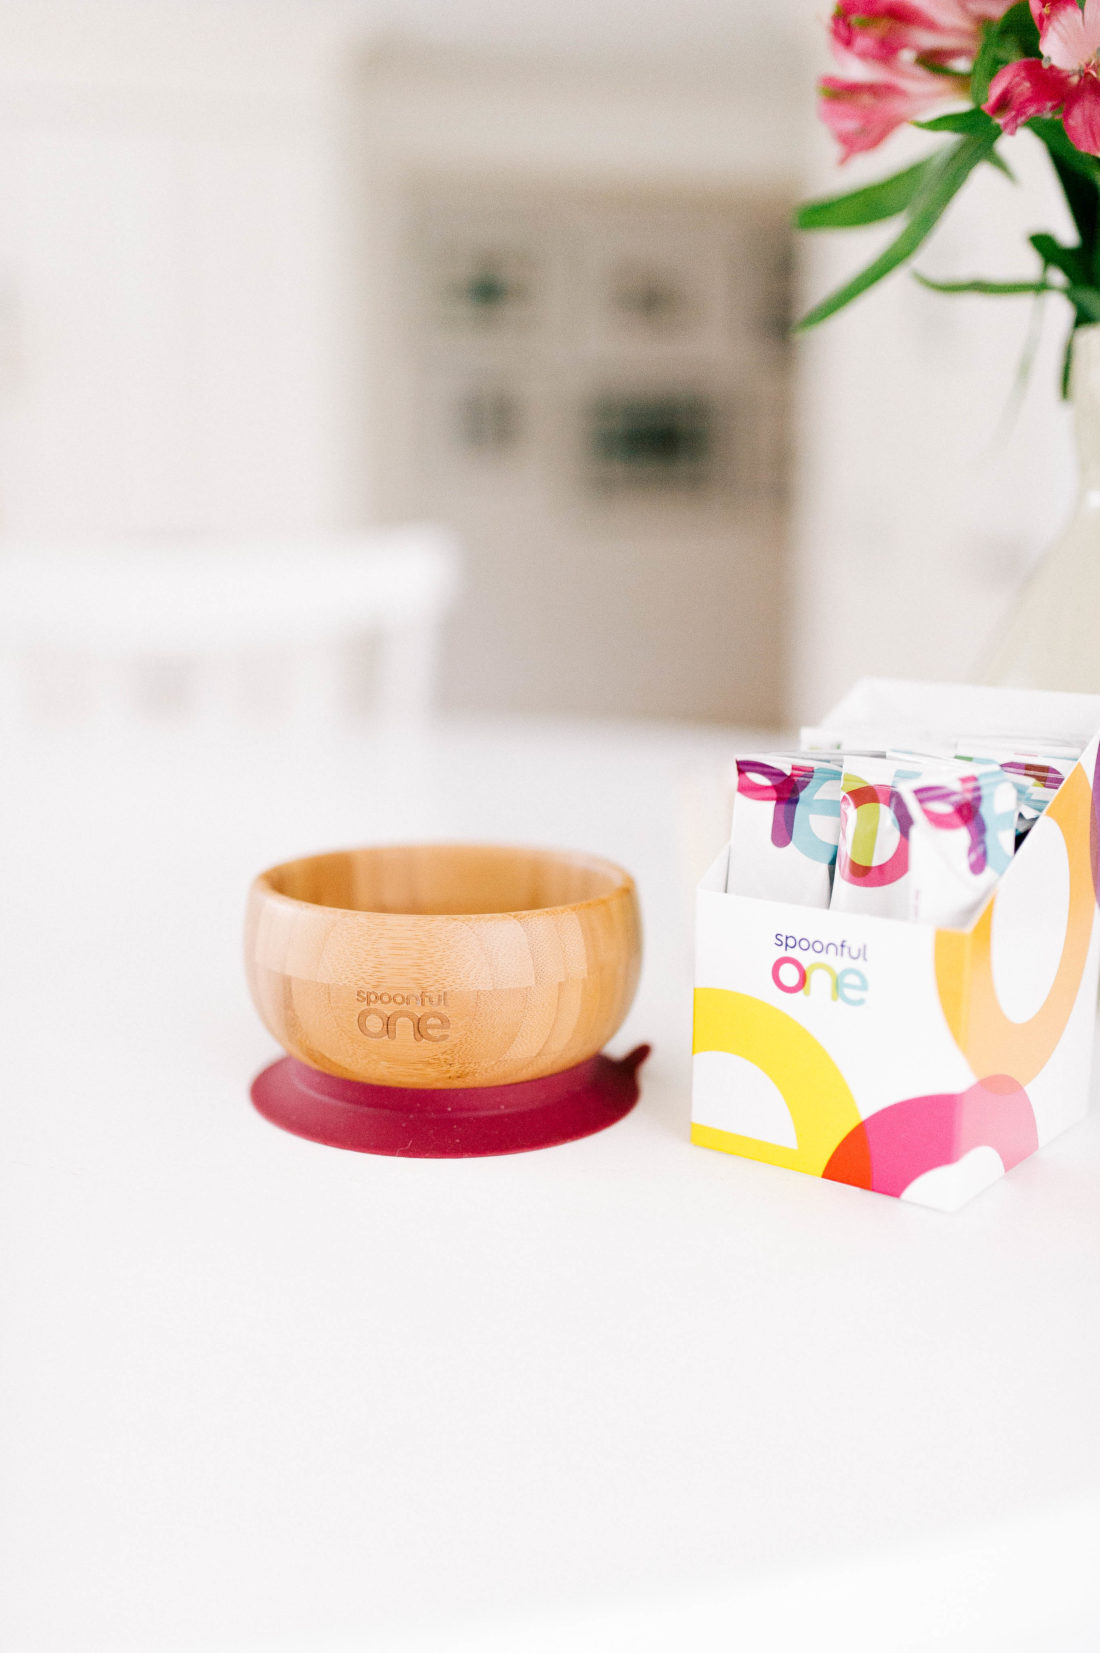 A SpoonfulOne feeding bowla and dose packets sit on the ktichen table in Eva Amurri Martino's connecticut home